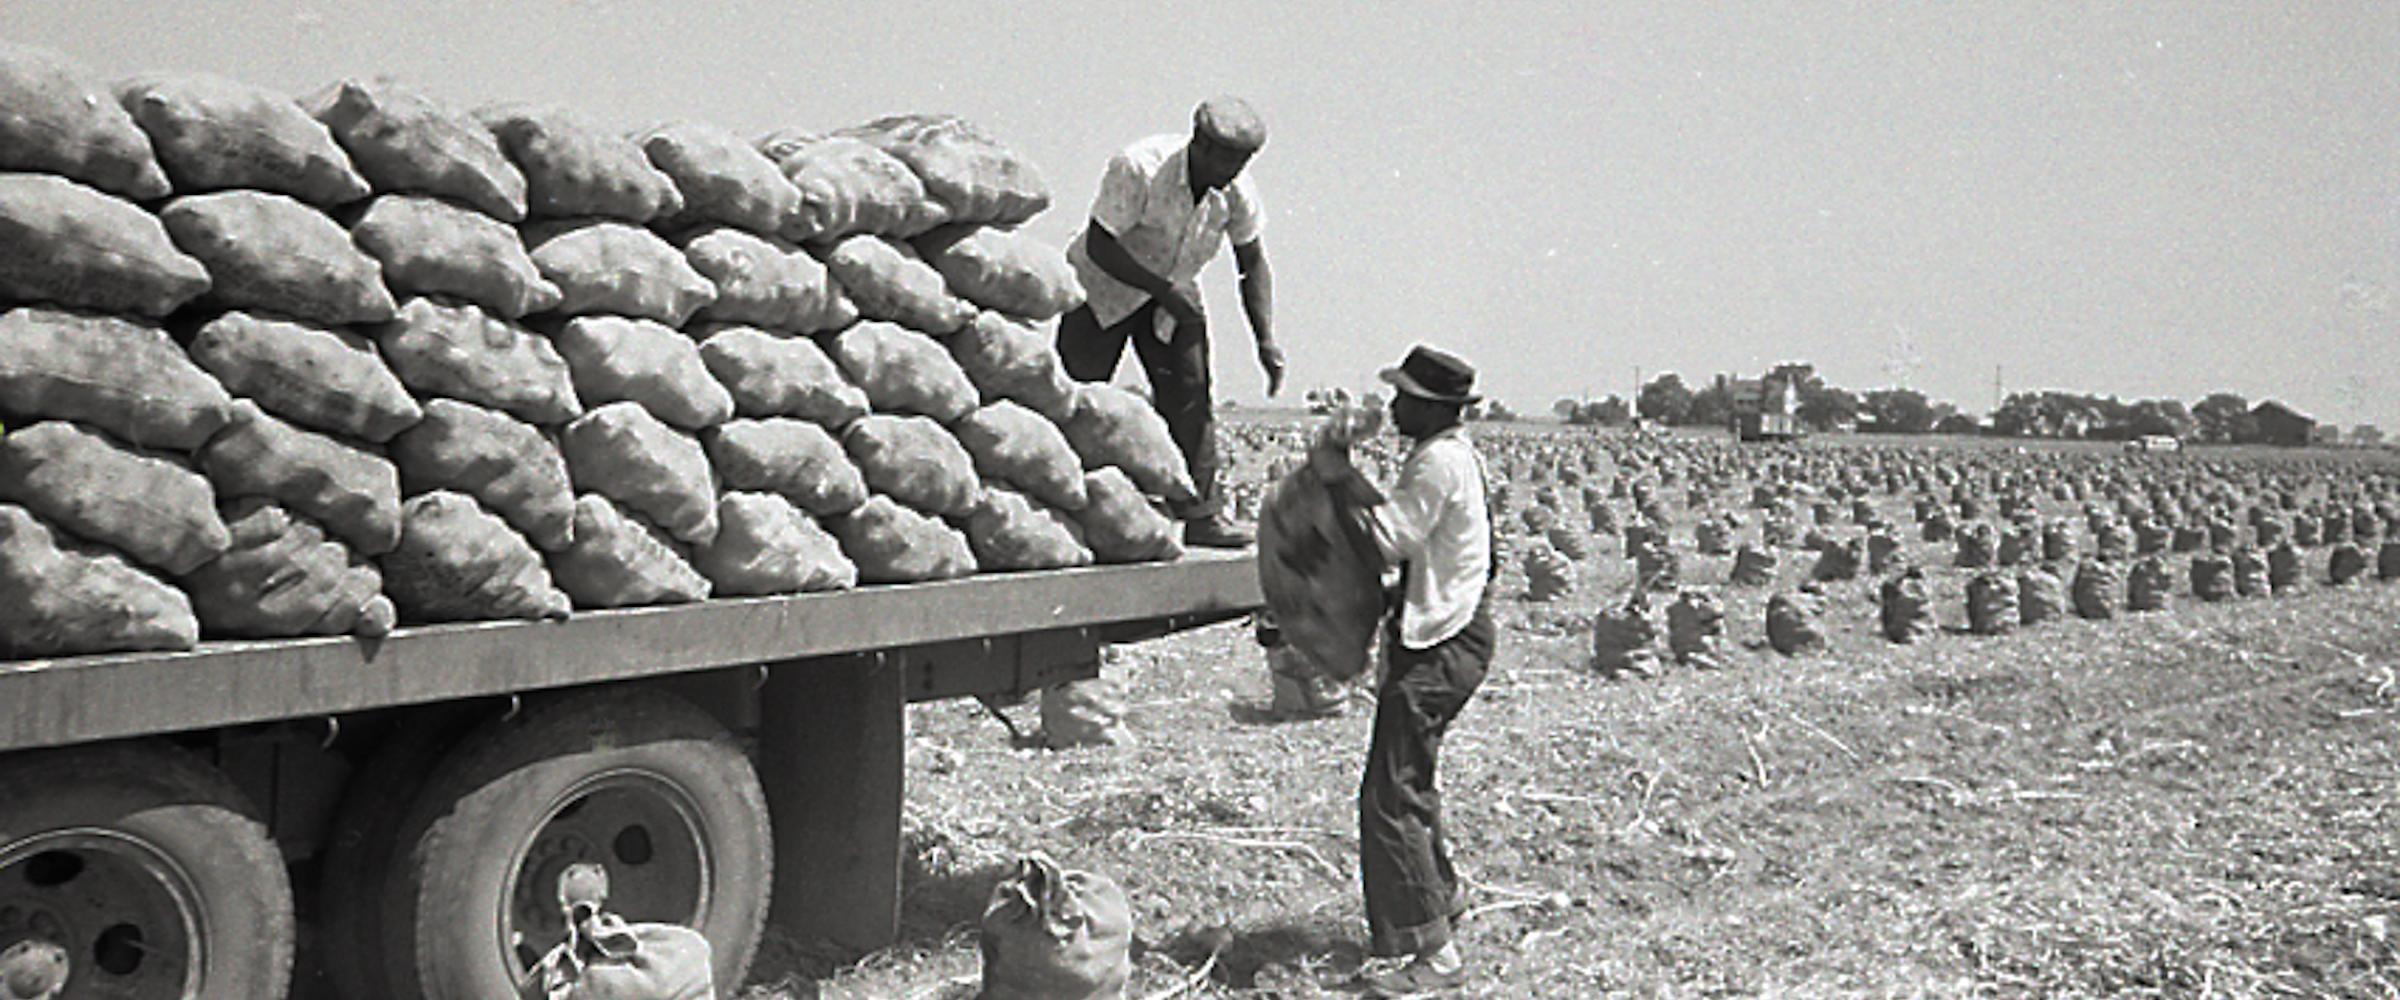 1958, California. Onion Harvest by Hand.